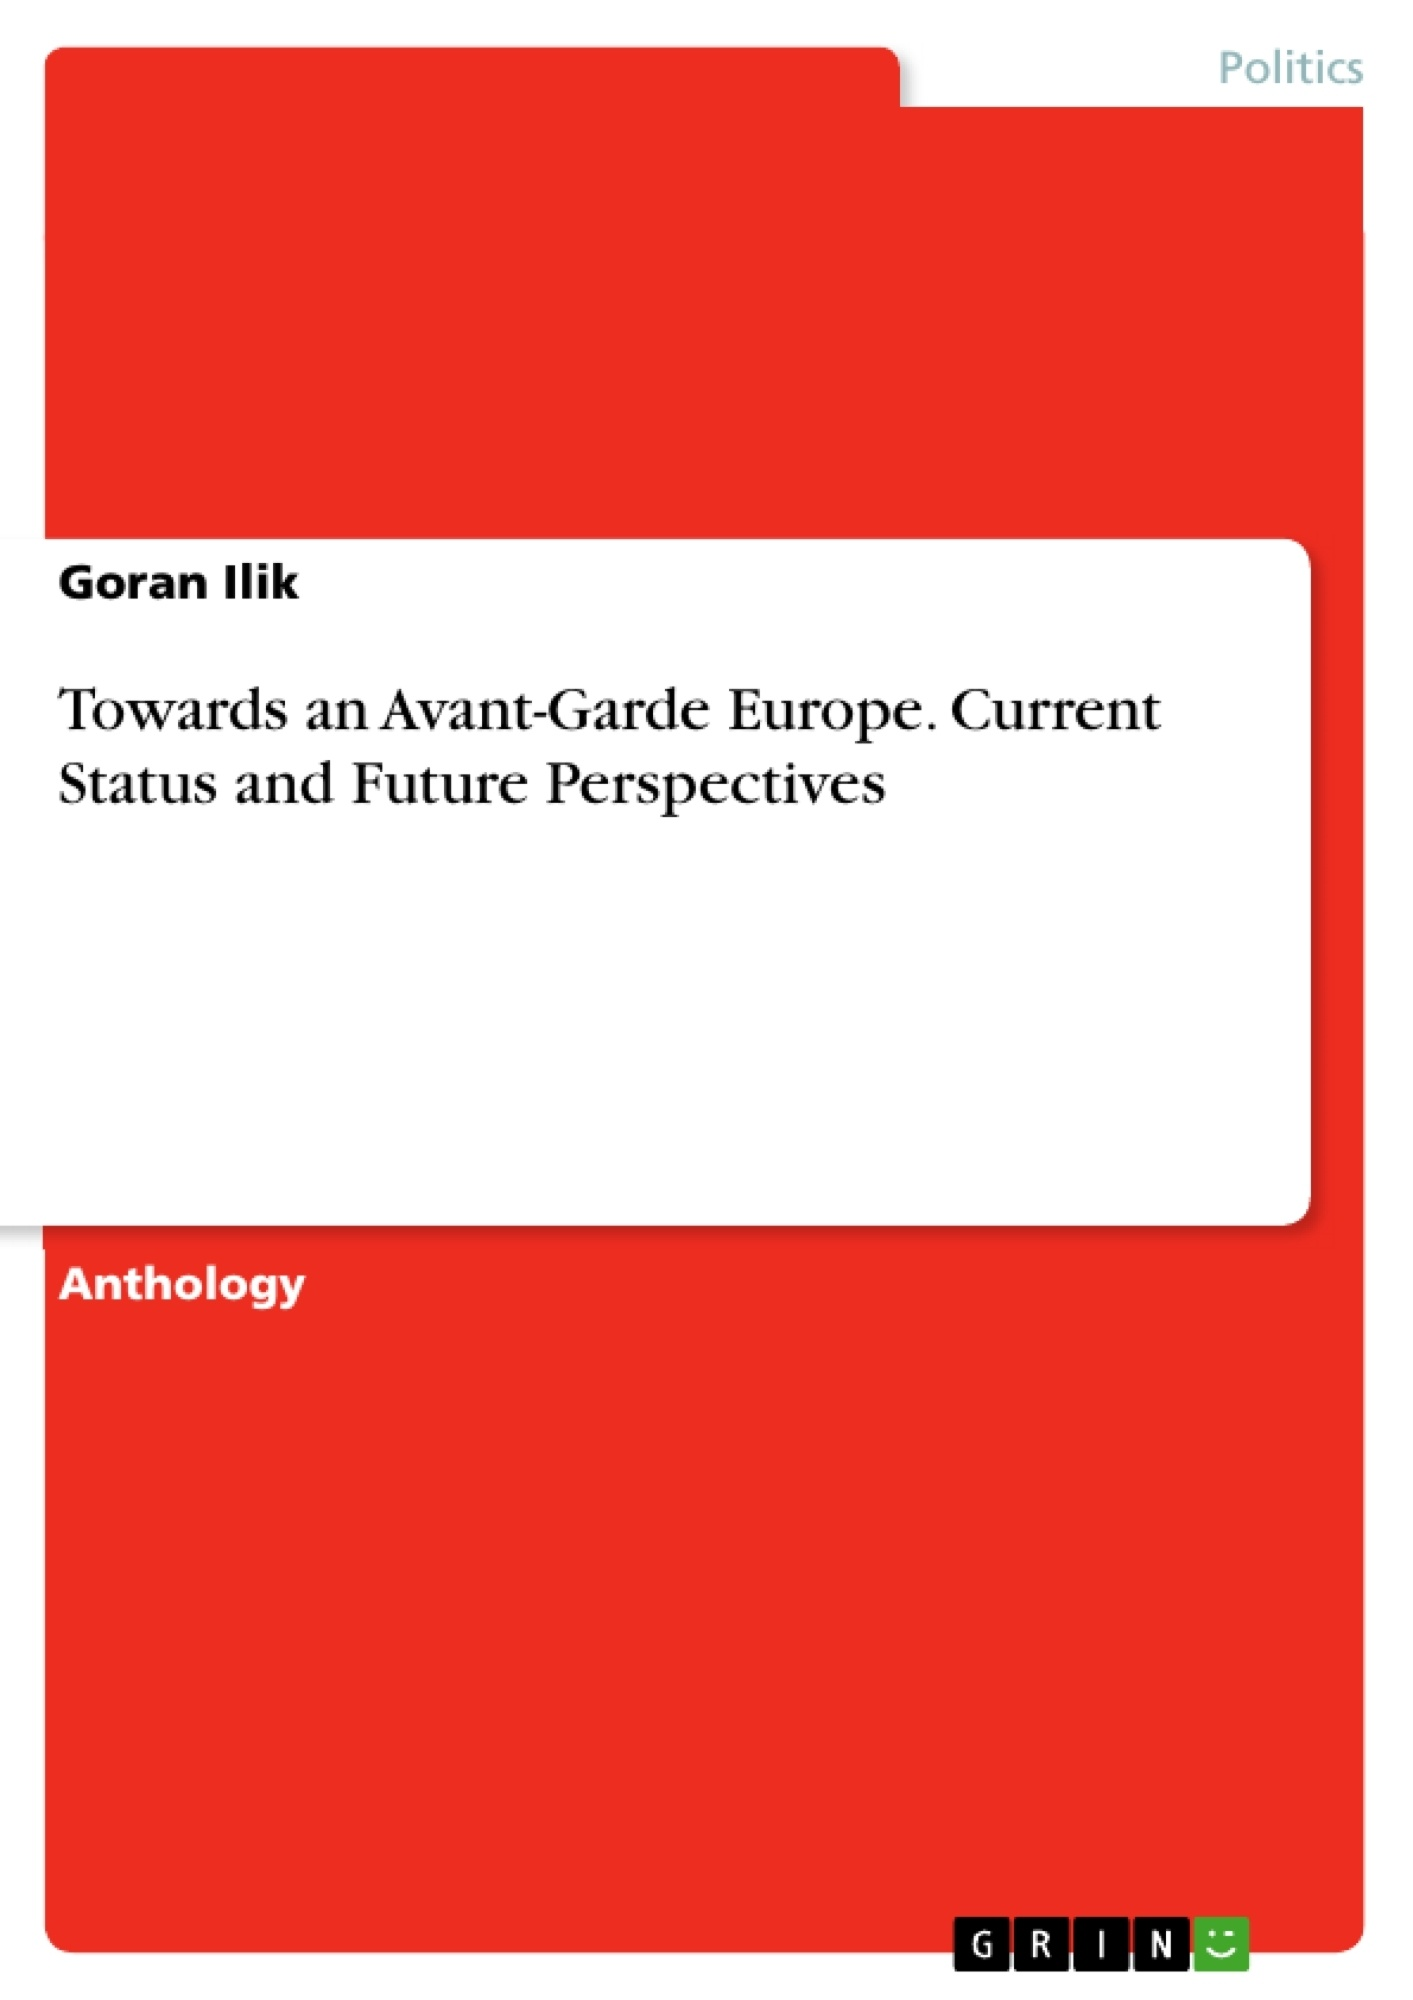 Title: Towards an Avant-Garde Europe. Current Status and Future Perspectives